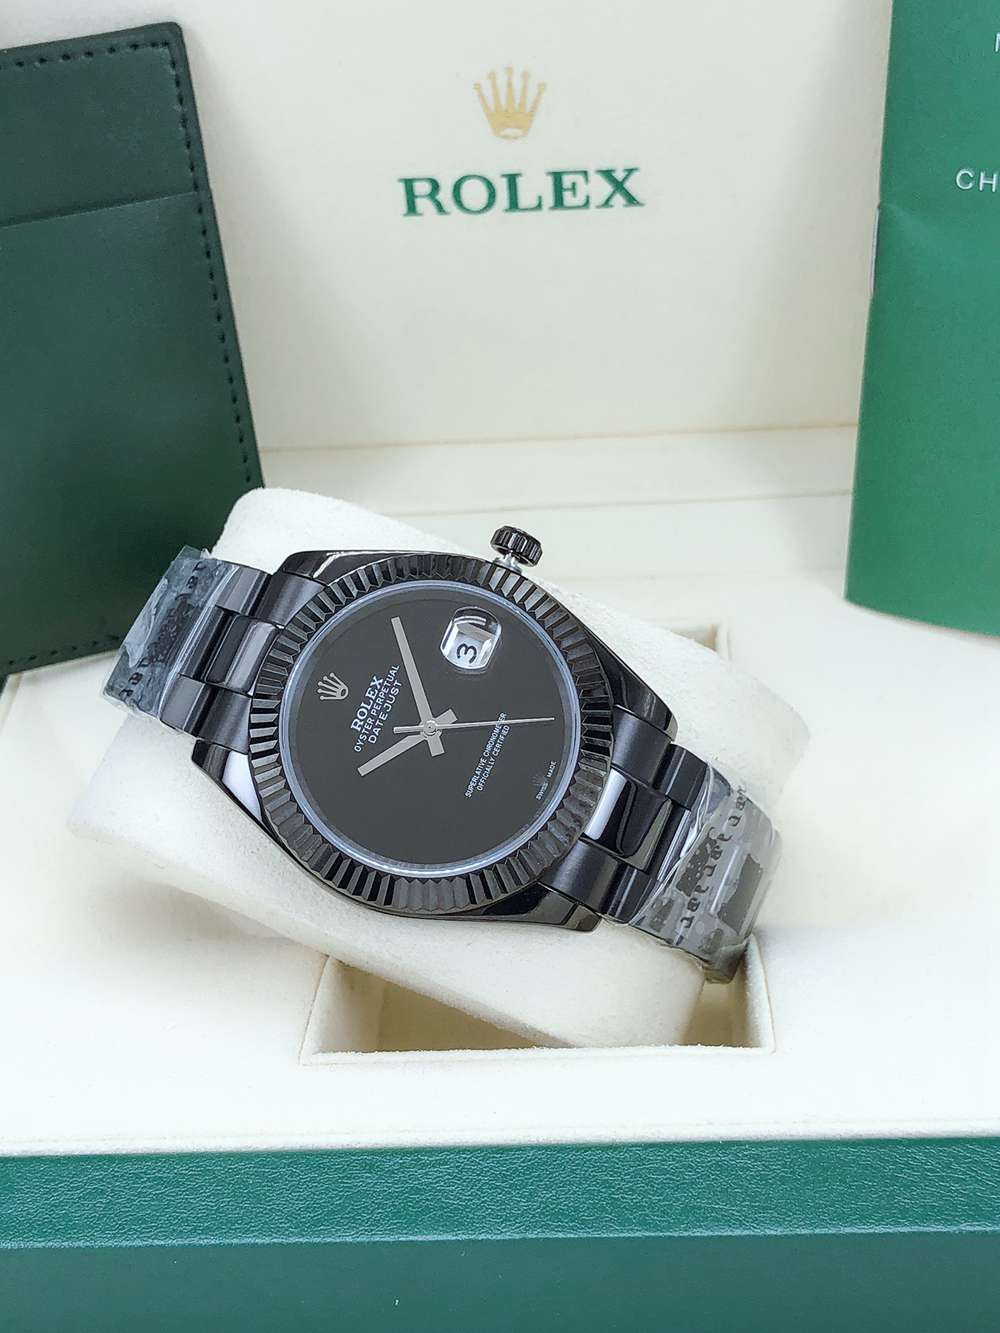 Datejust 41mm all black case black dial oyster band AAA automatic 2813 movement men's watch